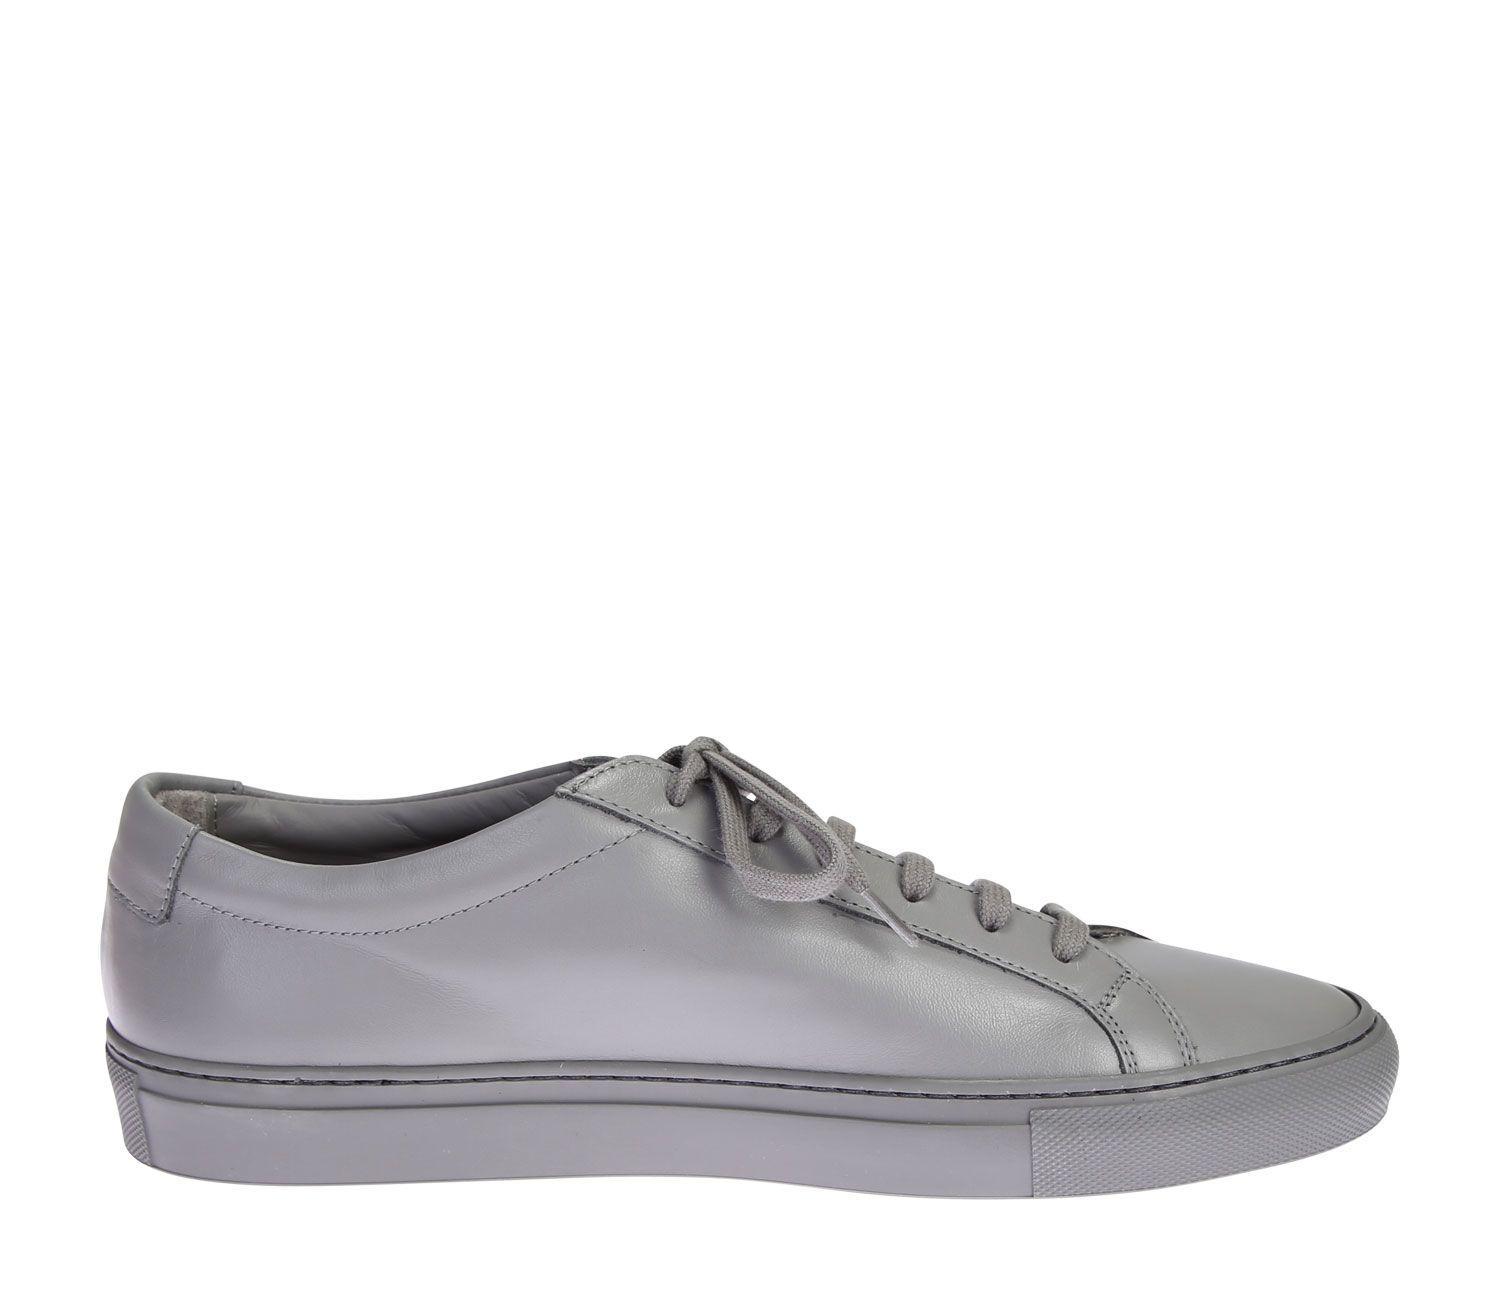 26738d3178a9 Common Projects Medium Grey Leather Original Achilles Low Men s Sneakers In  Gray